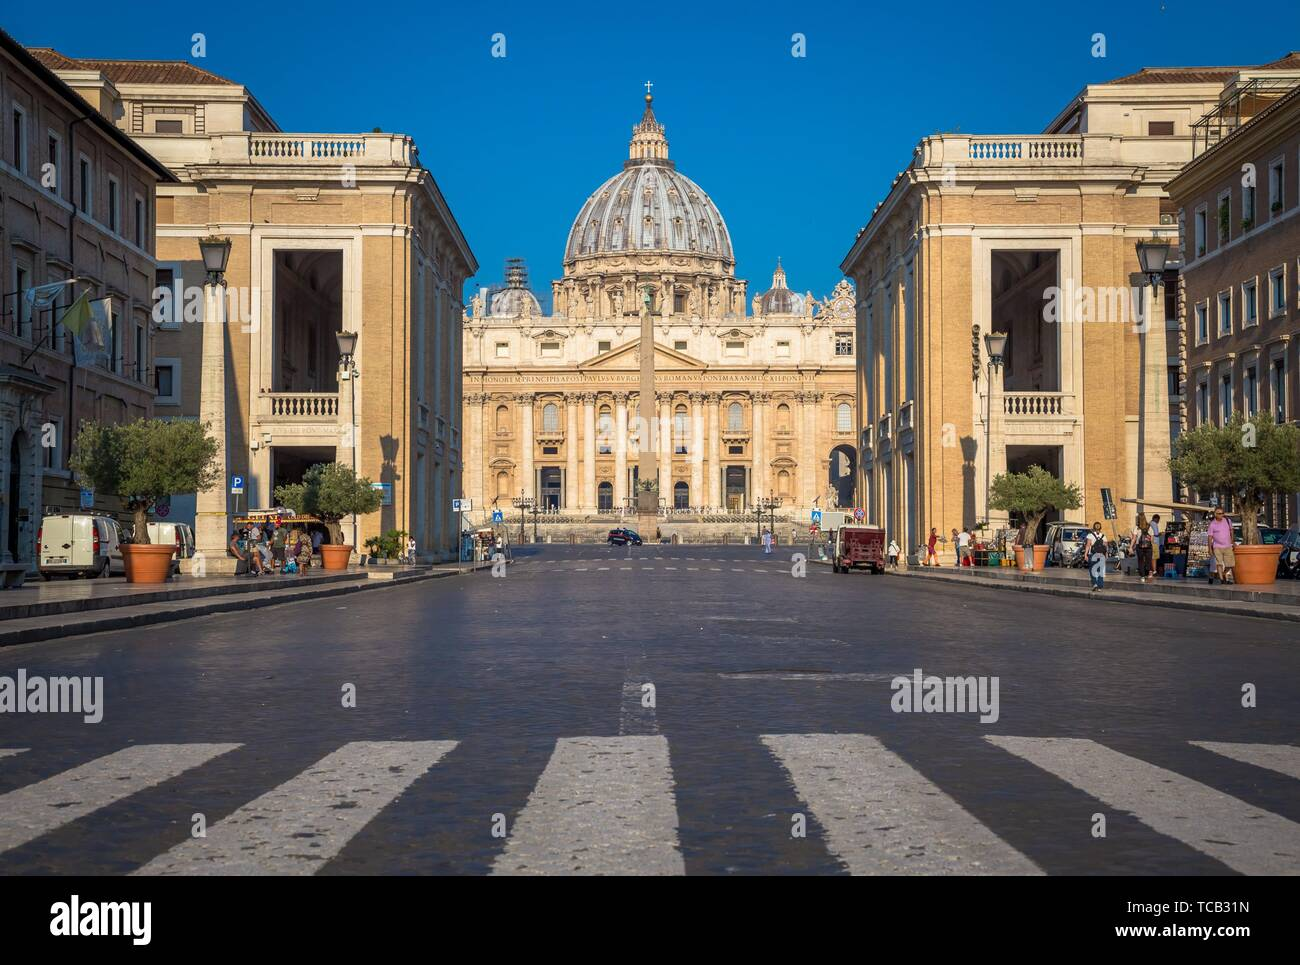 ROME, VATICAN STATE - AUGUST 20, 2018: Saint Peter Cathedral in Vatican with the famous Cupola, early morning daylight and still few tourists. Stock Photo